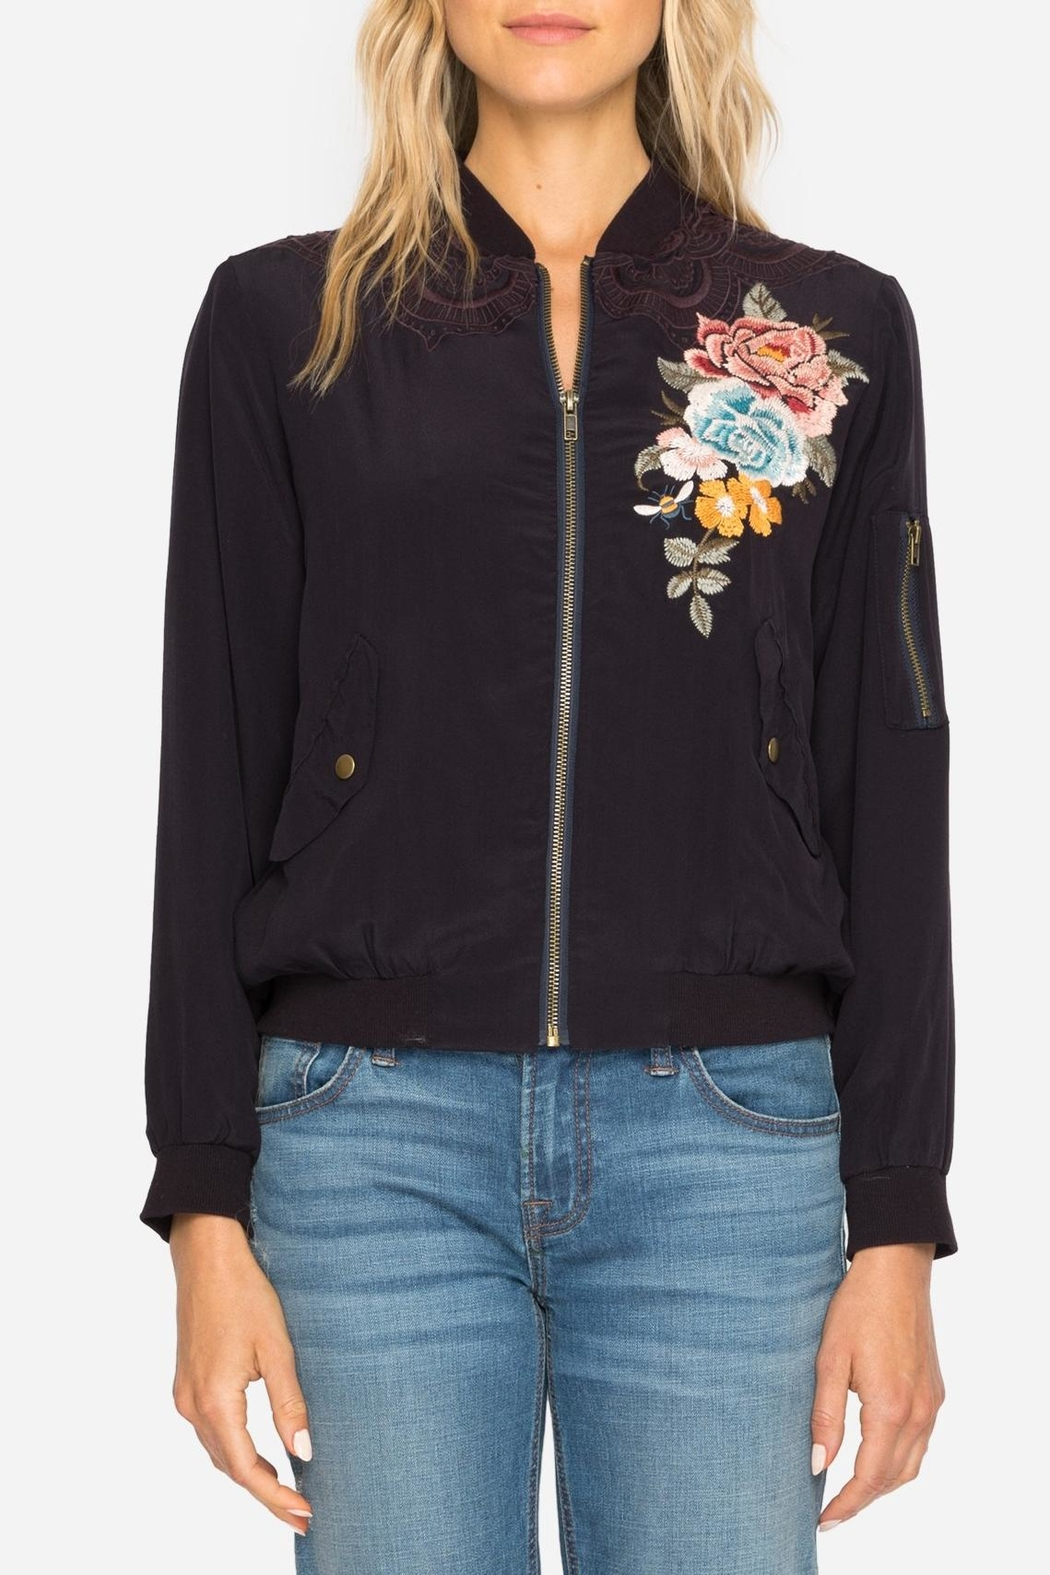 Johnny Was Silk Embroidered Bomber Jacket - Main Image